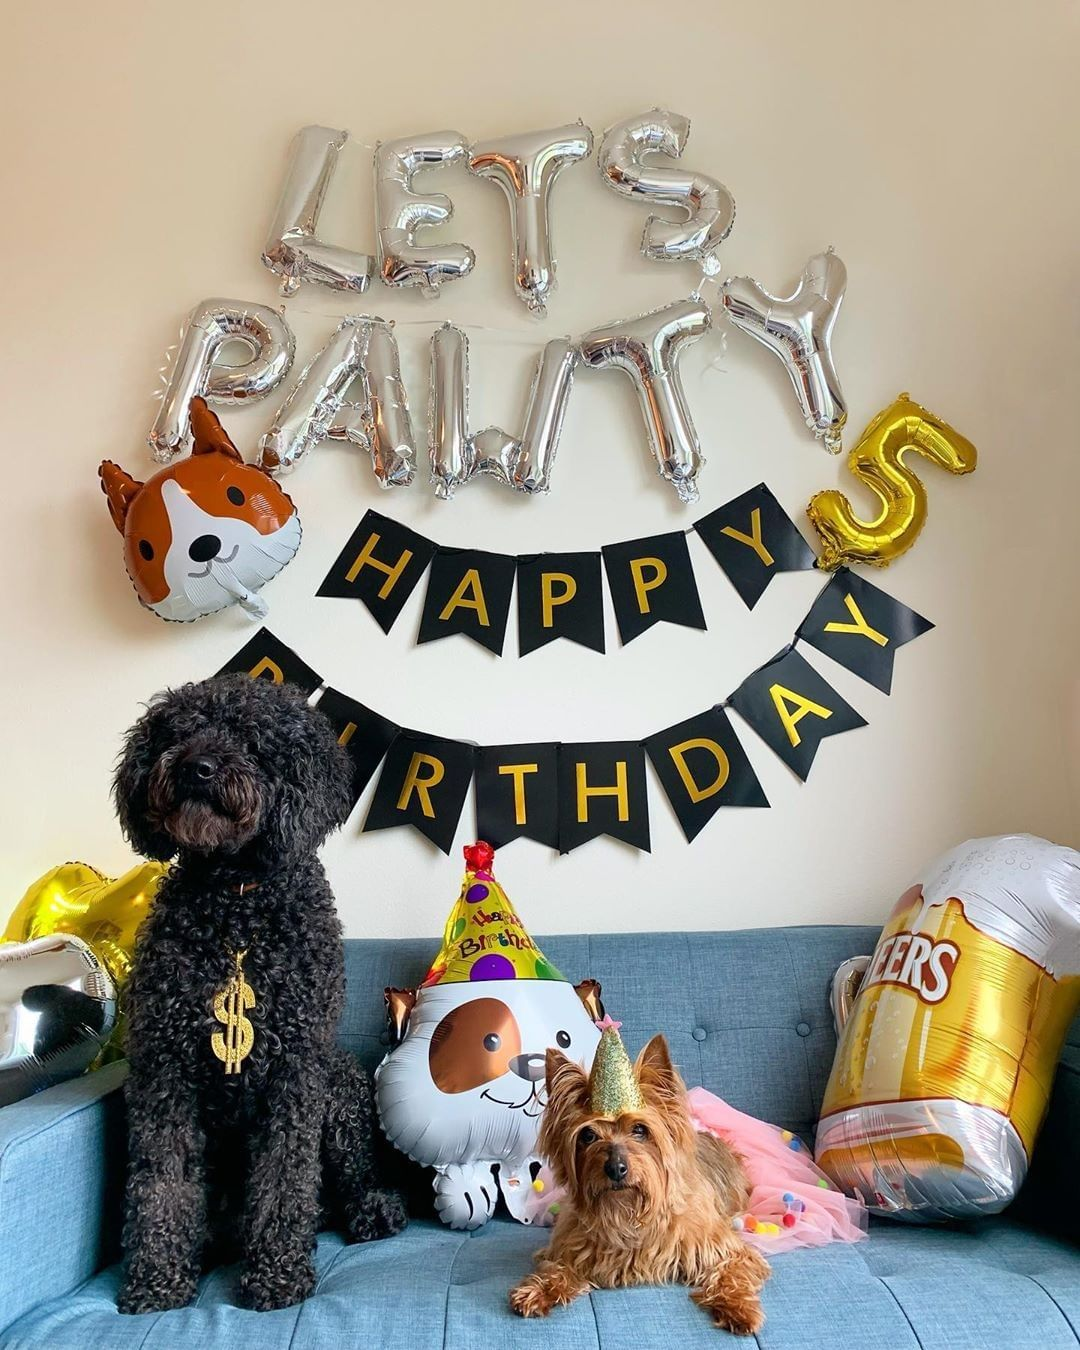 Lets Pawty Balloons Puppy Birthday Party Decoration Puppy Birthday Party Decor Balloon Dogs Birthday Party Banner Sign Puppy Birthday Parties Puppy Birthday Dog Birthday